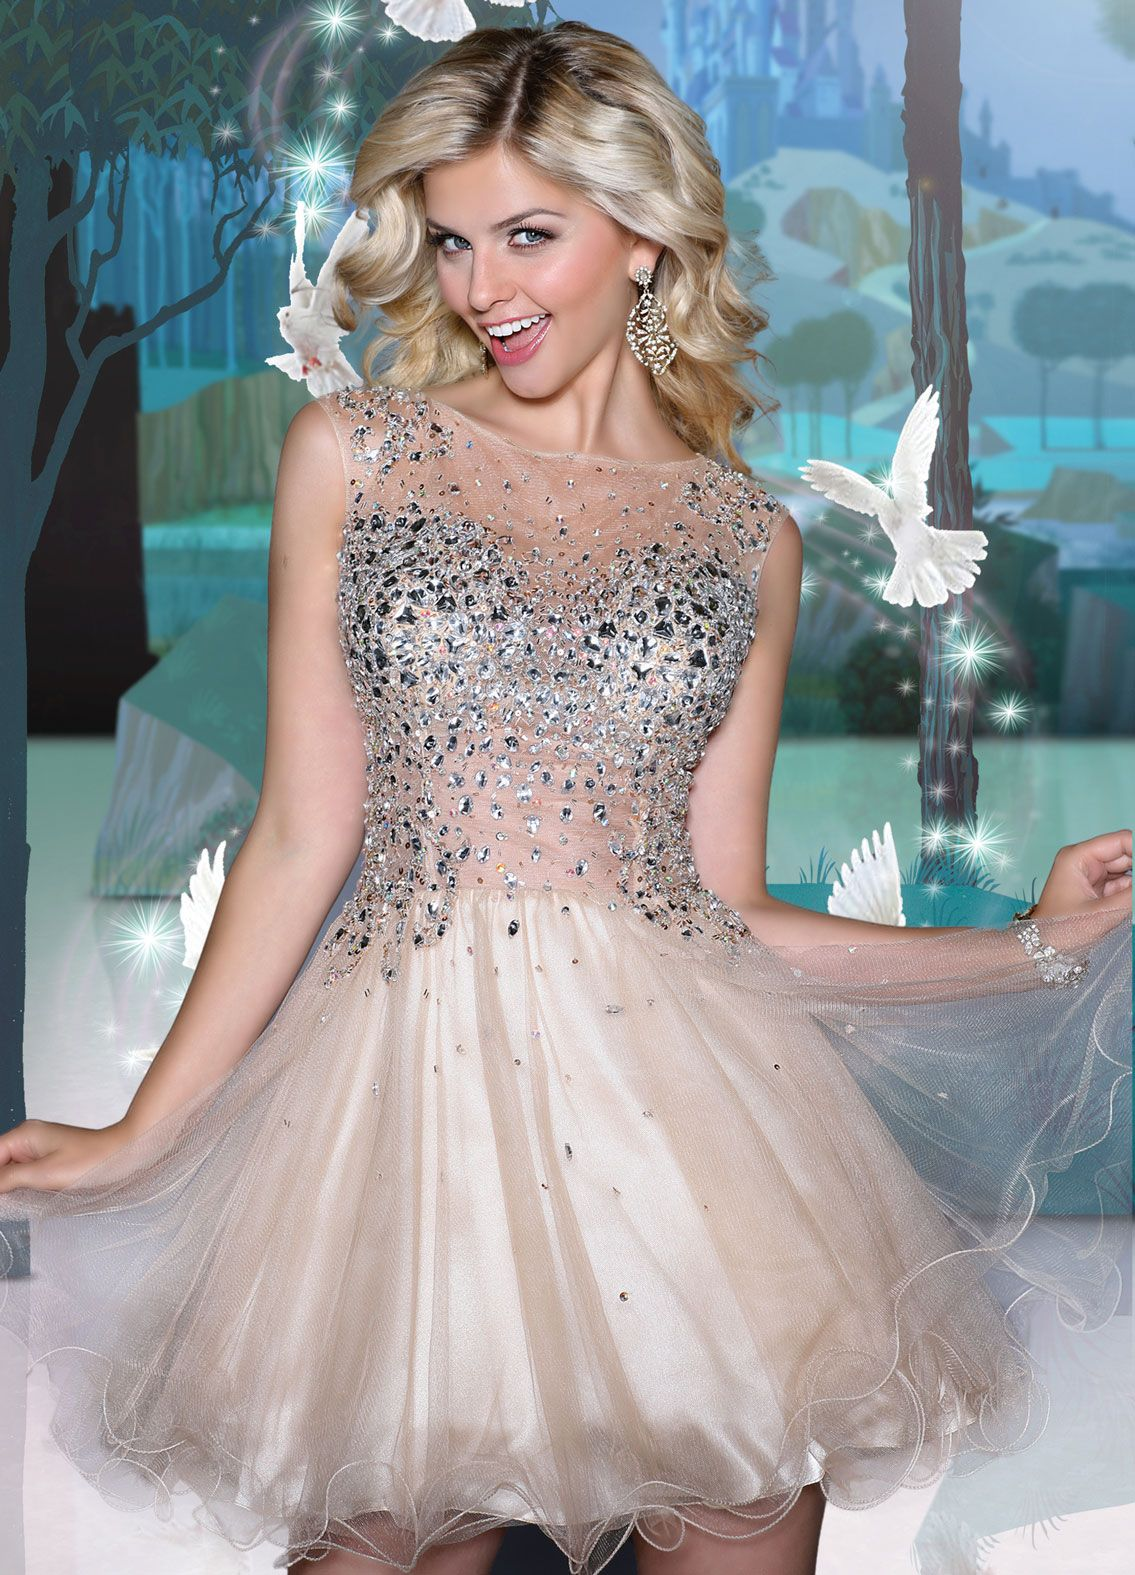 Disney Forever Enchanted Prom Dresses Enchanted Forest Theme